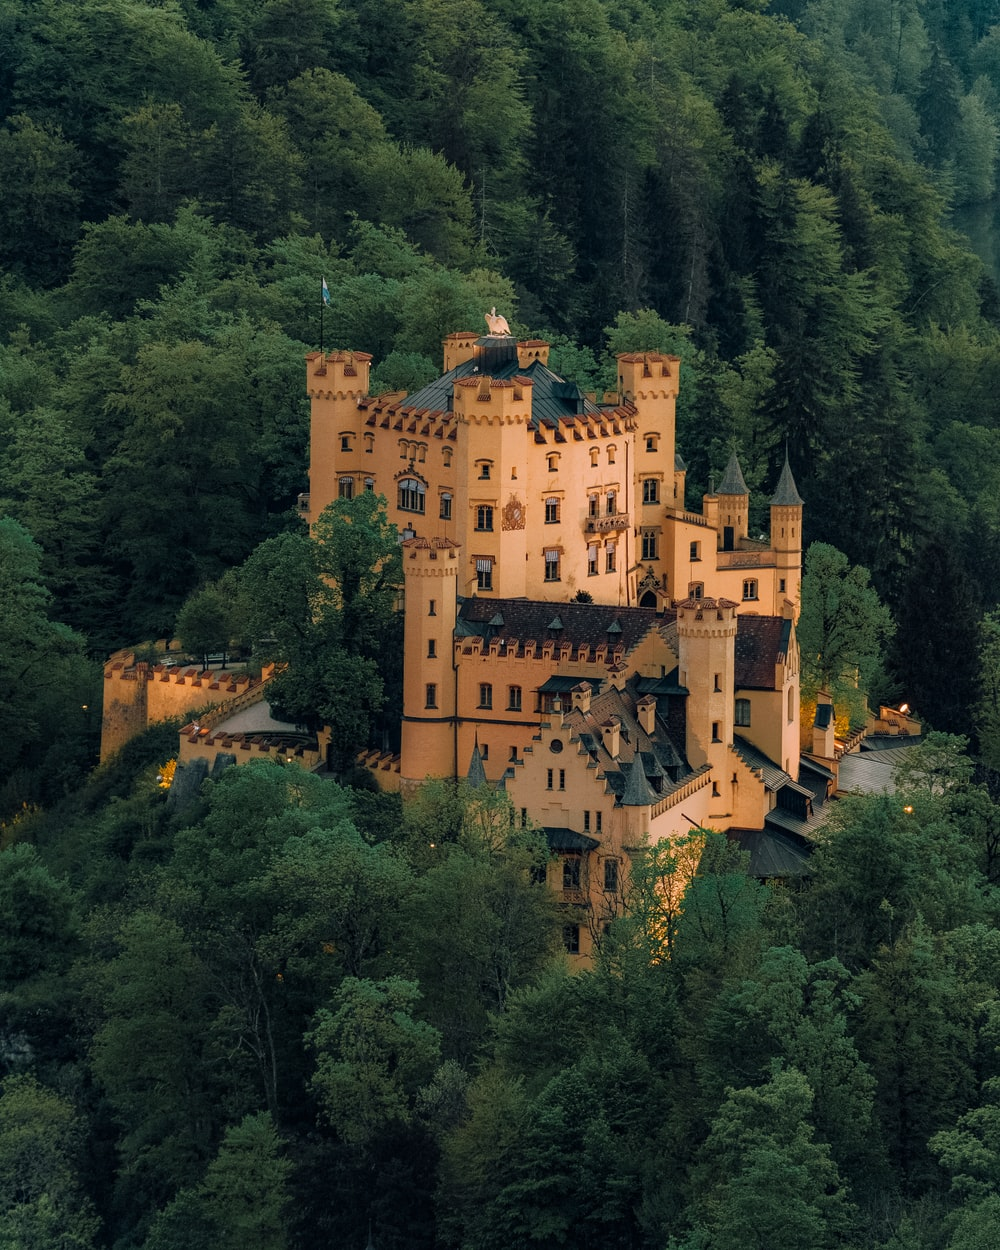 brown concrete castle surrounded by green trees during daytime